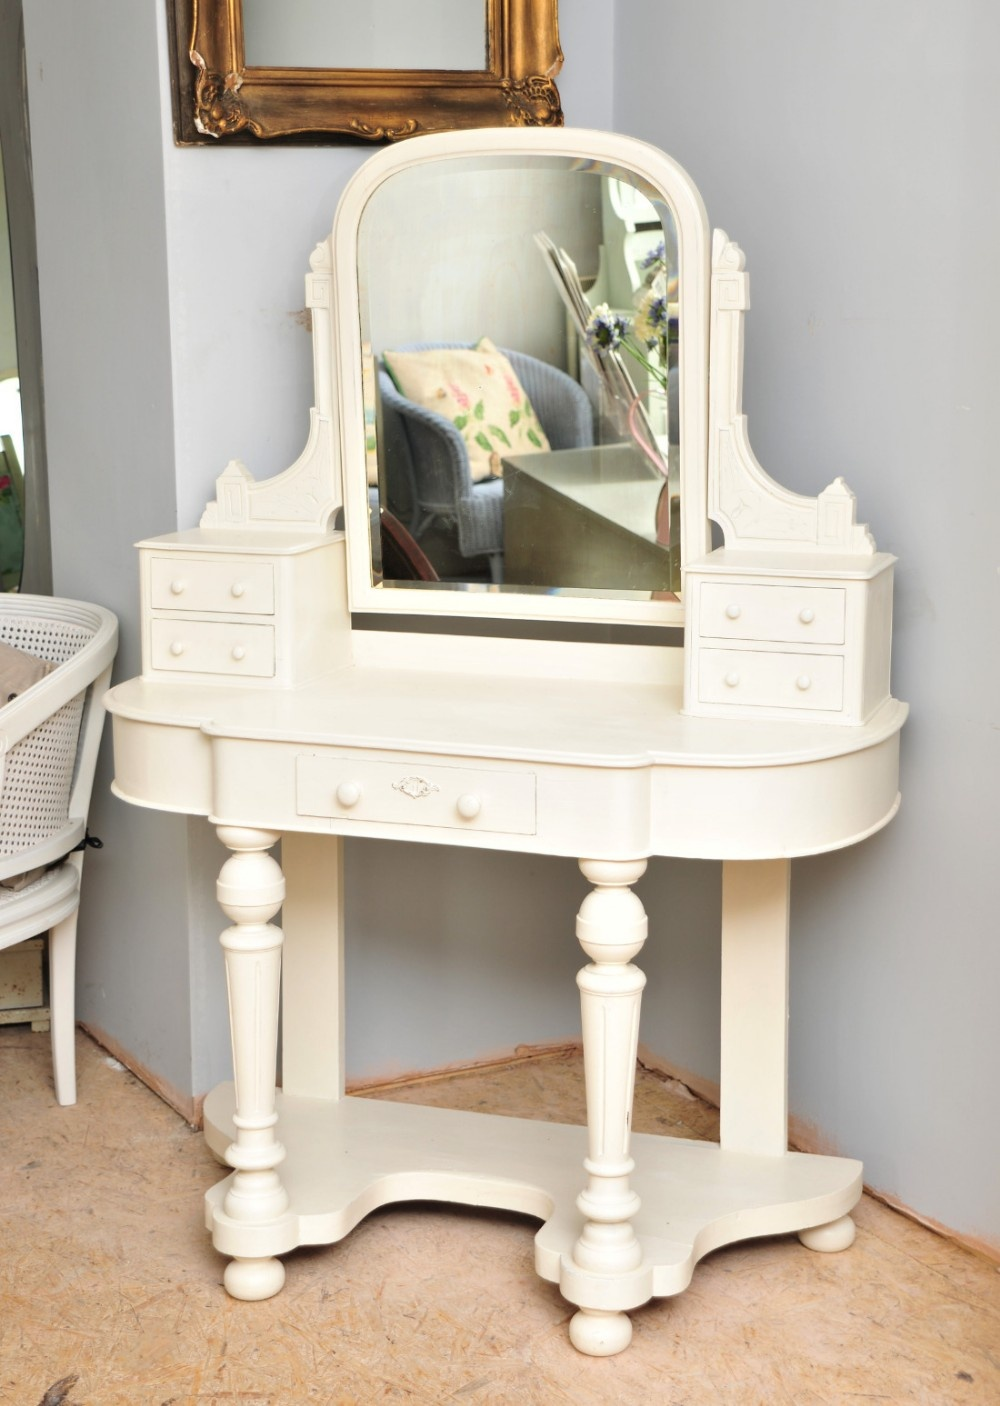 Victorian dressing table - Old Vintage Victorian Mirrored Dressing Table In Annie Sloan Original